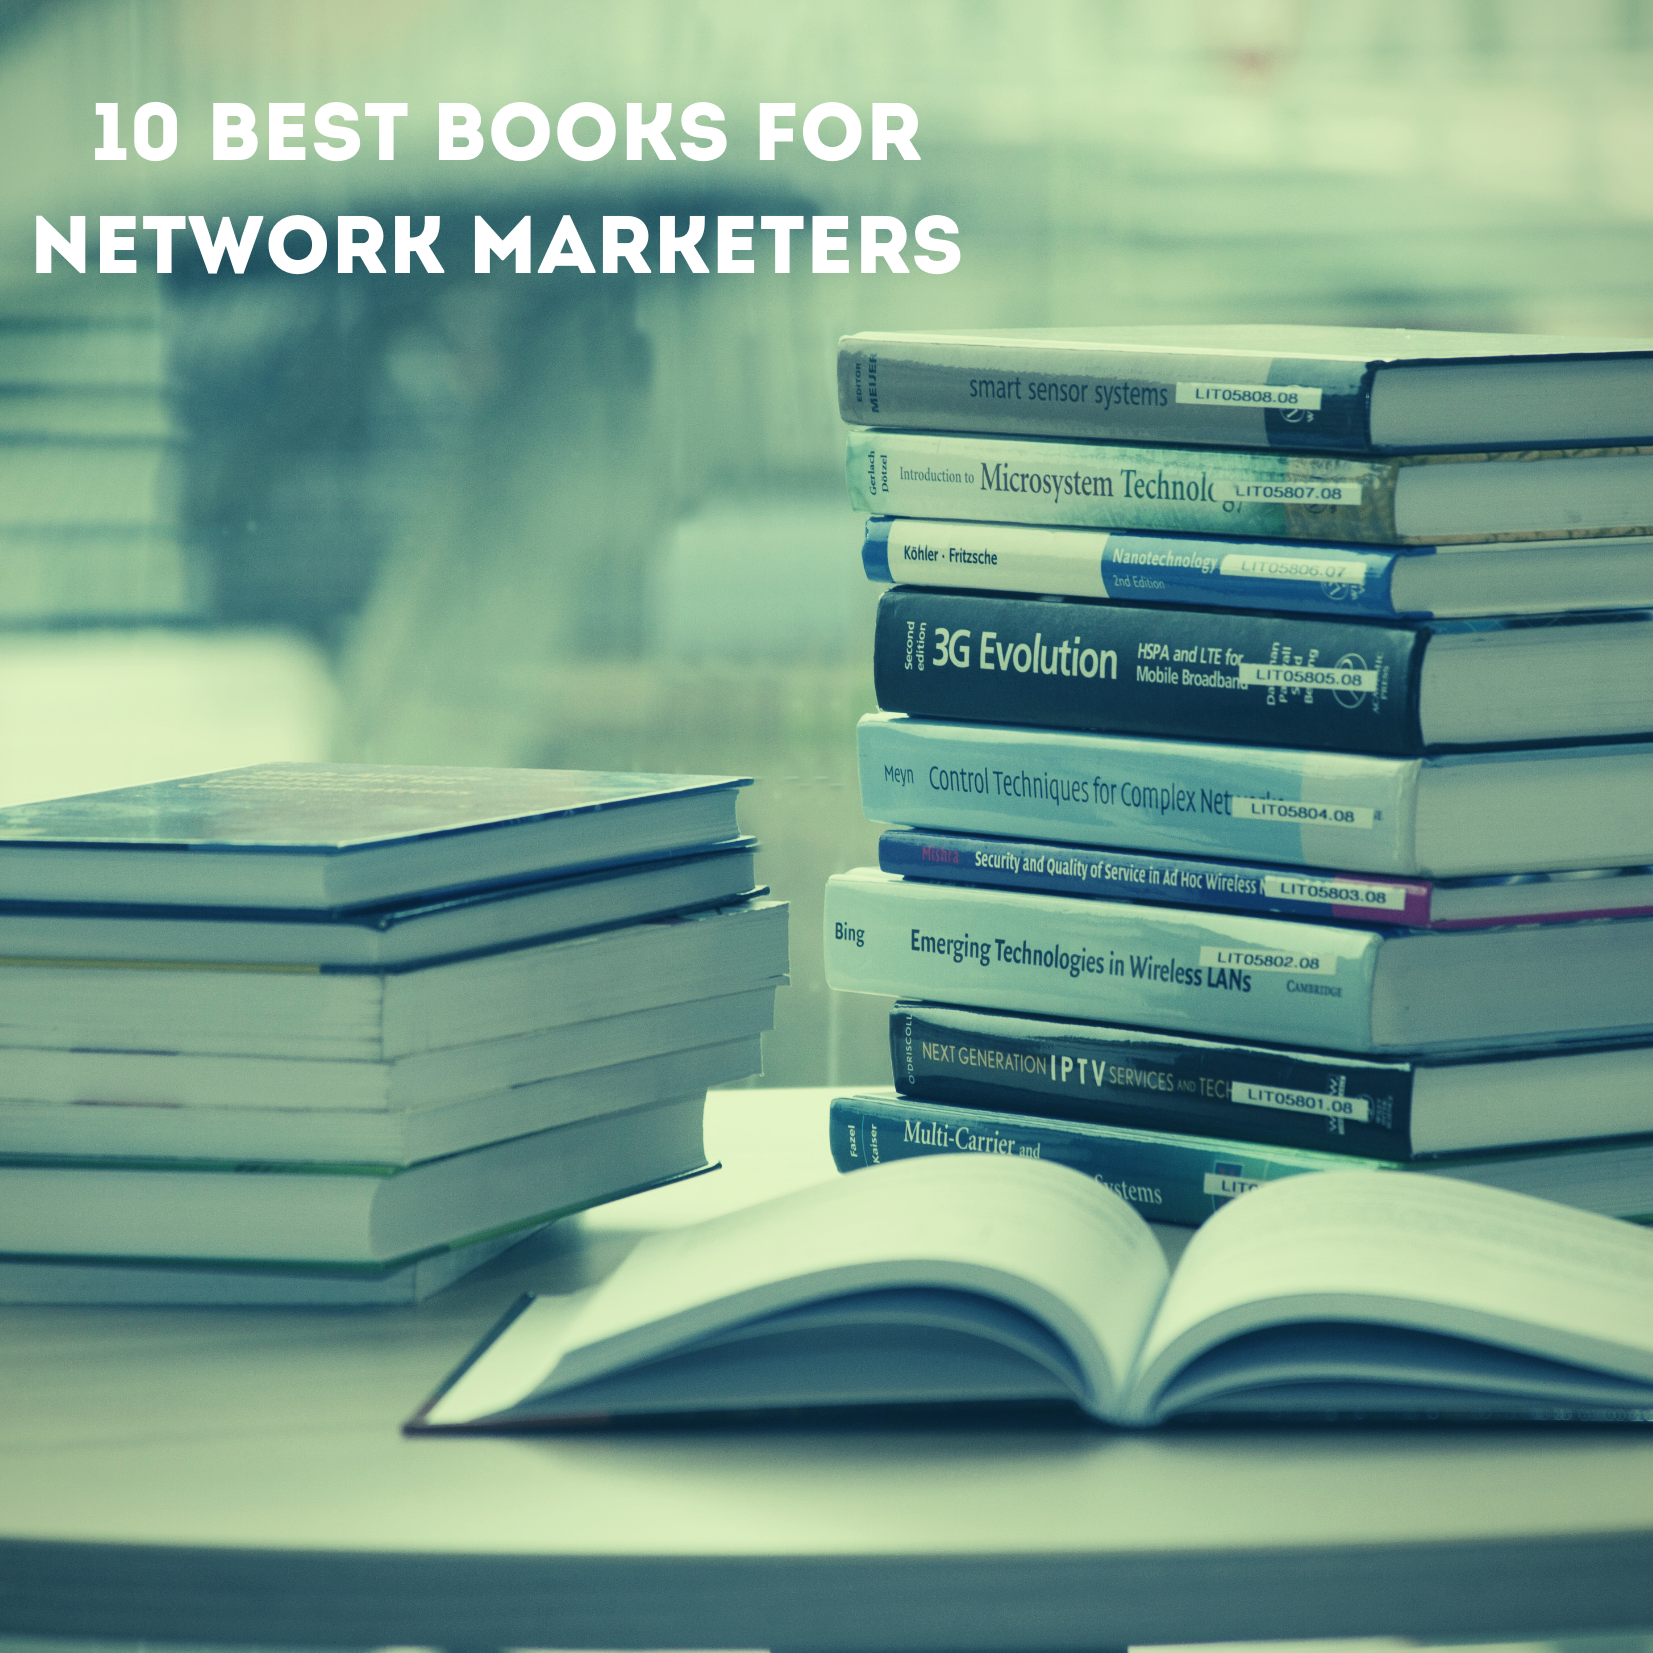 10 Best Network Marketing Books Recommended by Successful Marketers